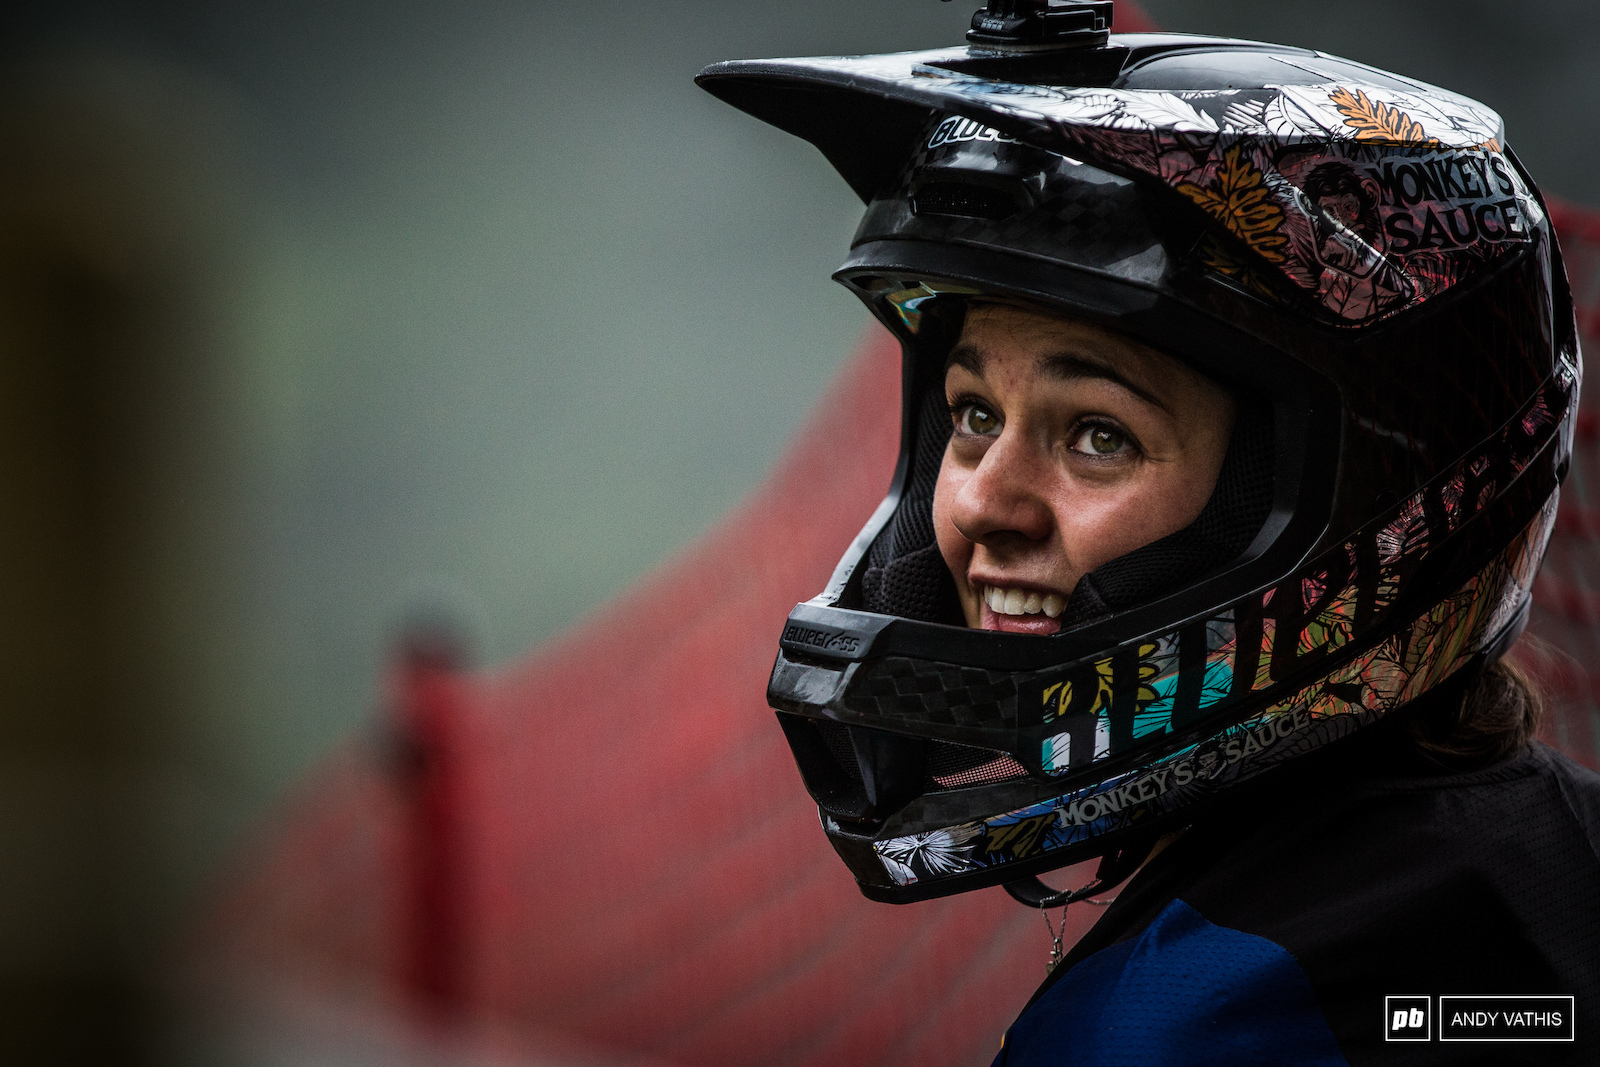 Marine Cabirou was very observant this morning during practice. Every second counts as the battle goes on between her and Tracey.